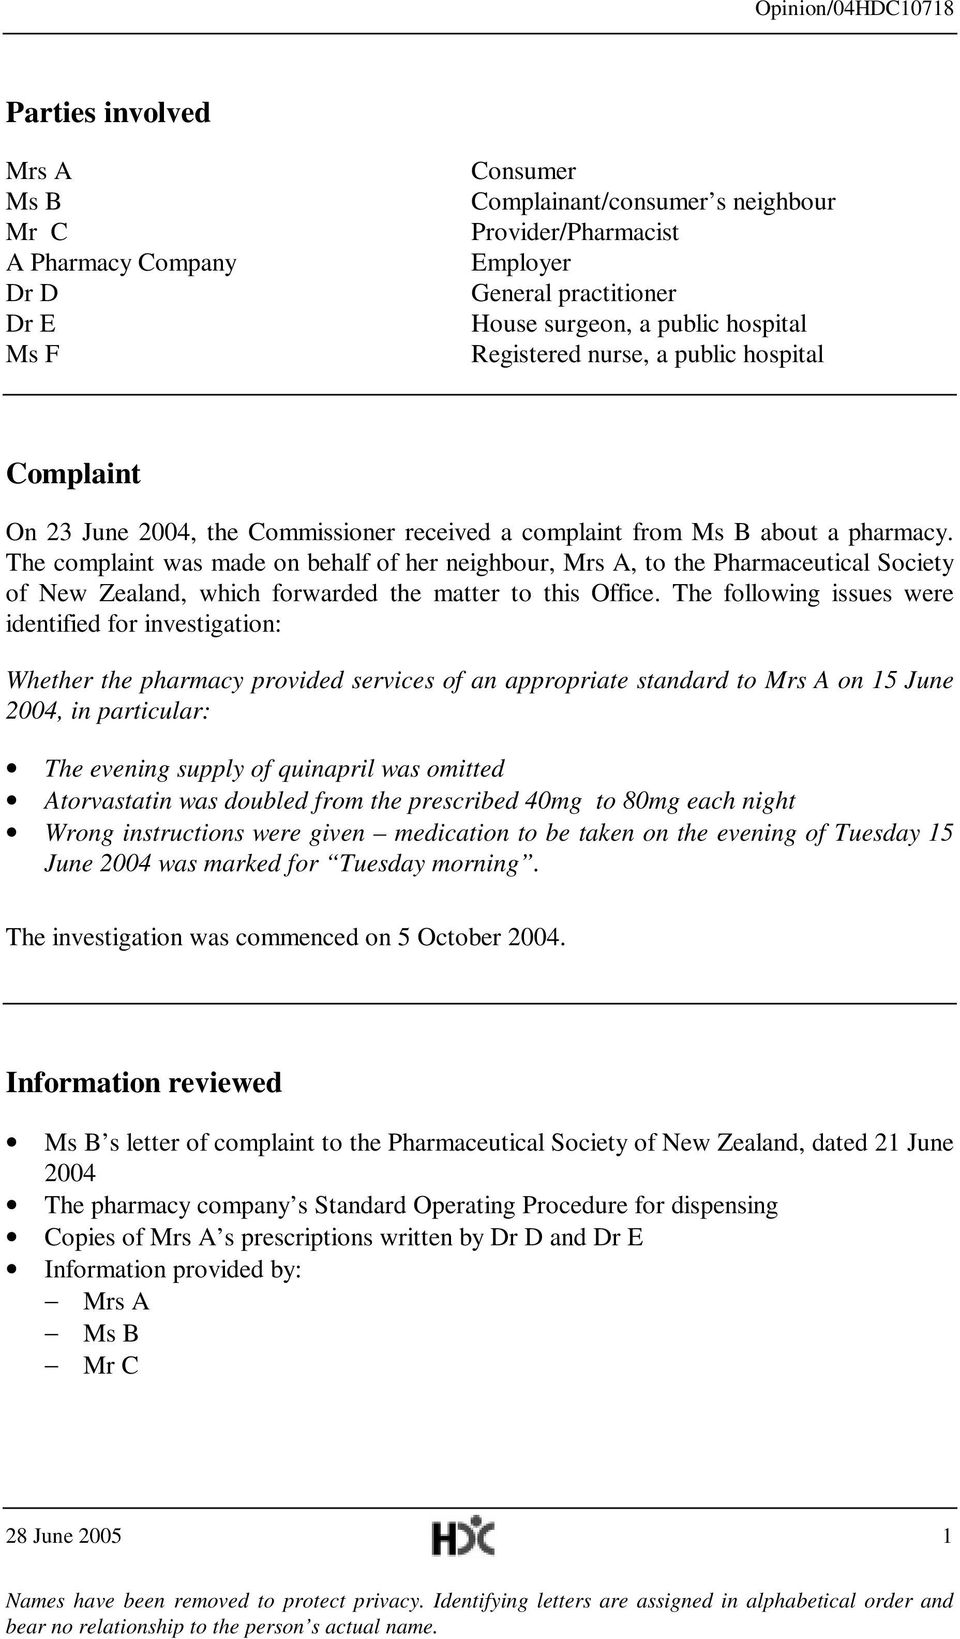 The complaint was made on behalf of her neighbour, Mrs A, to the Pharmaceutical Society of New Zealand, which forwarded the matter to this Office.